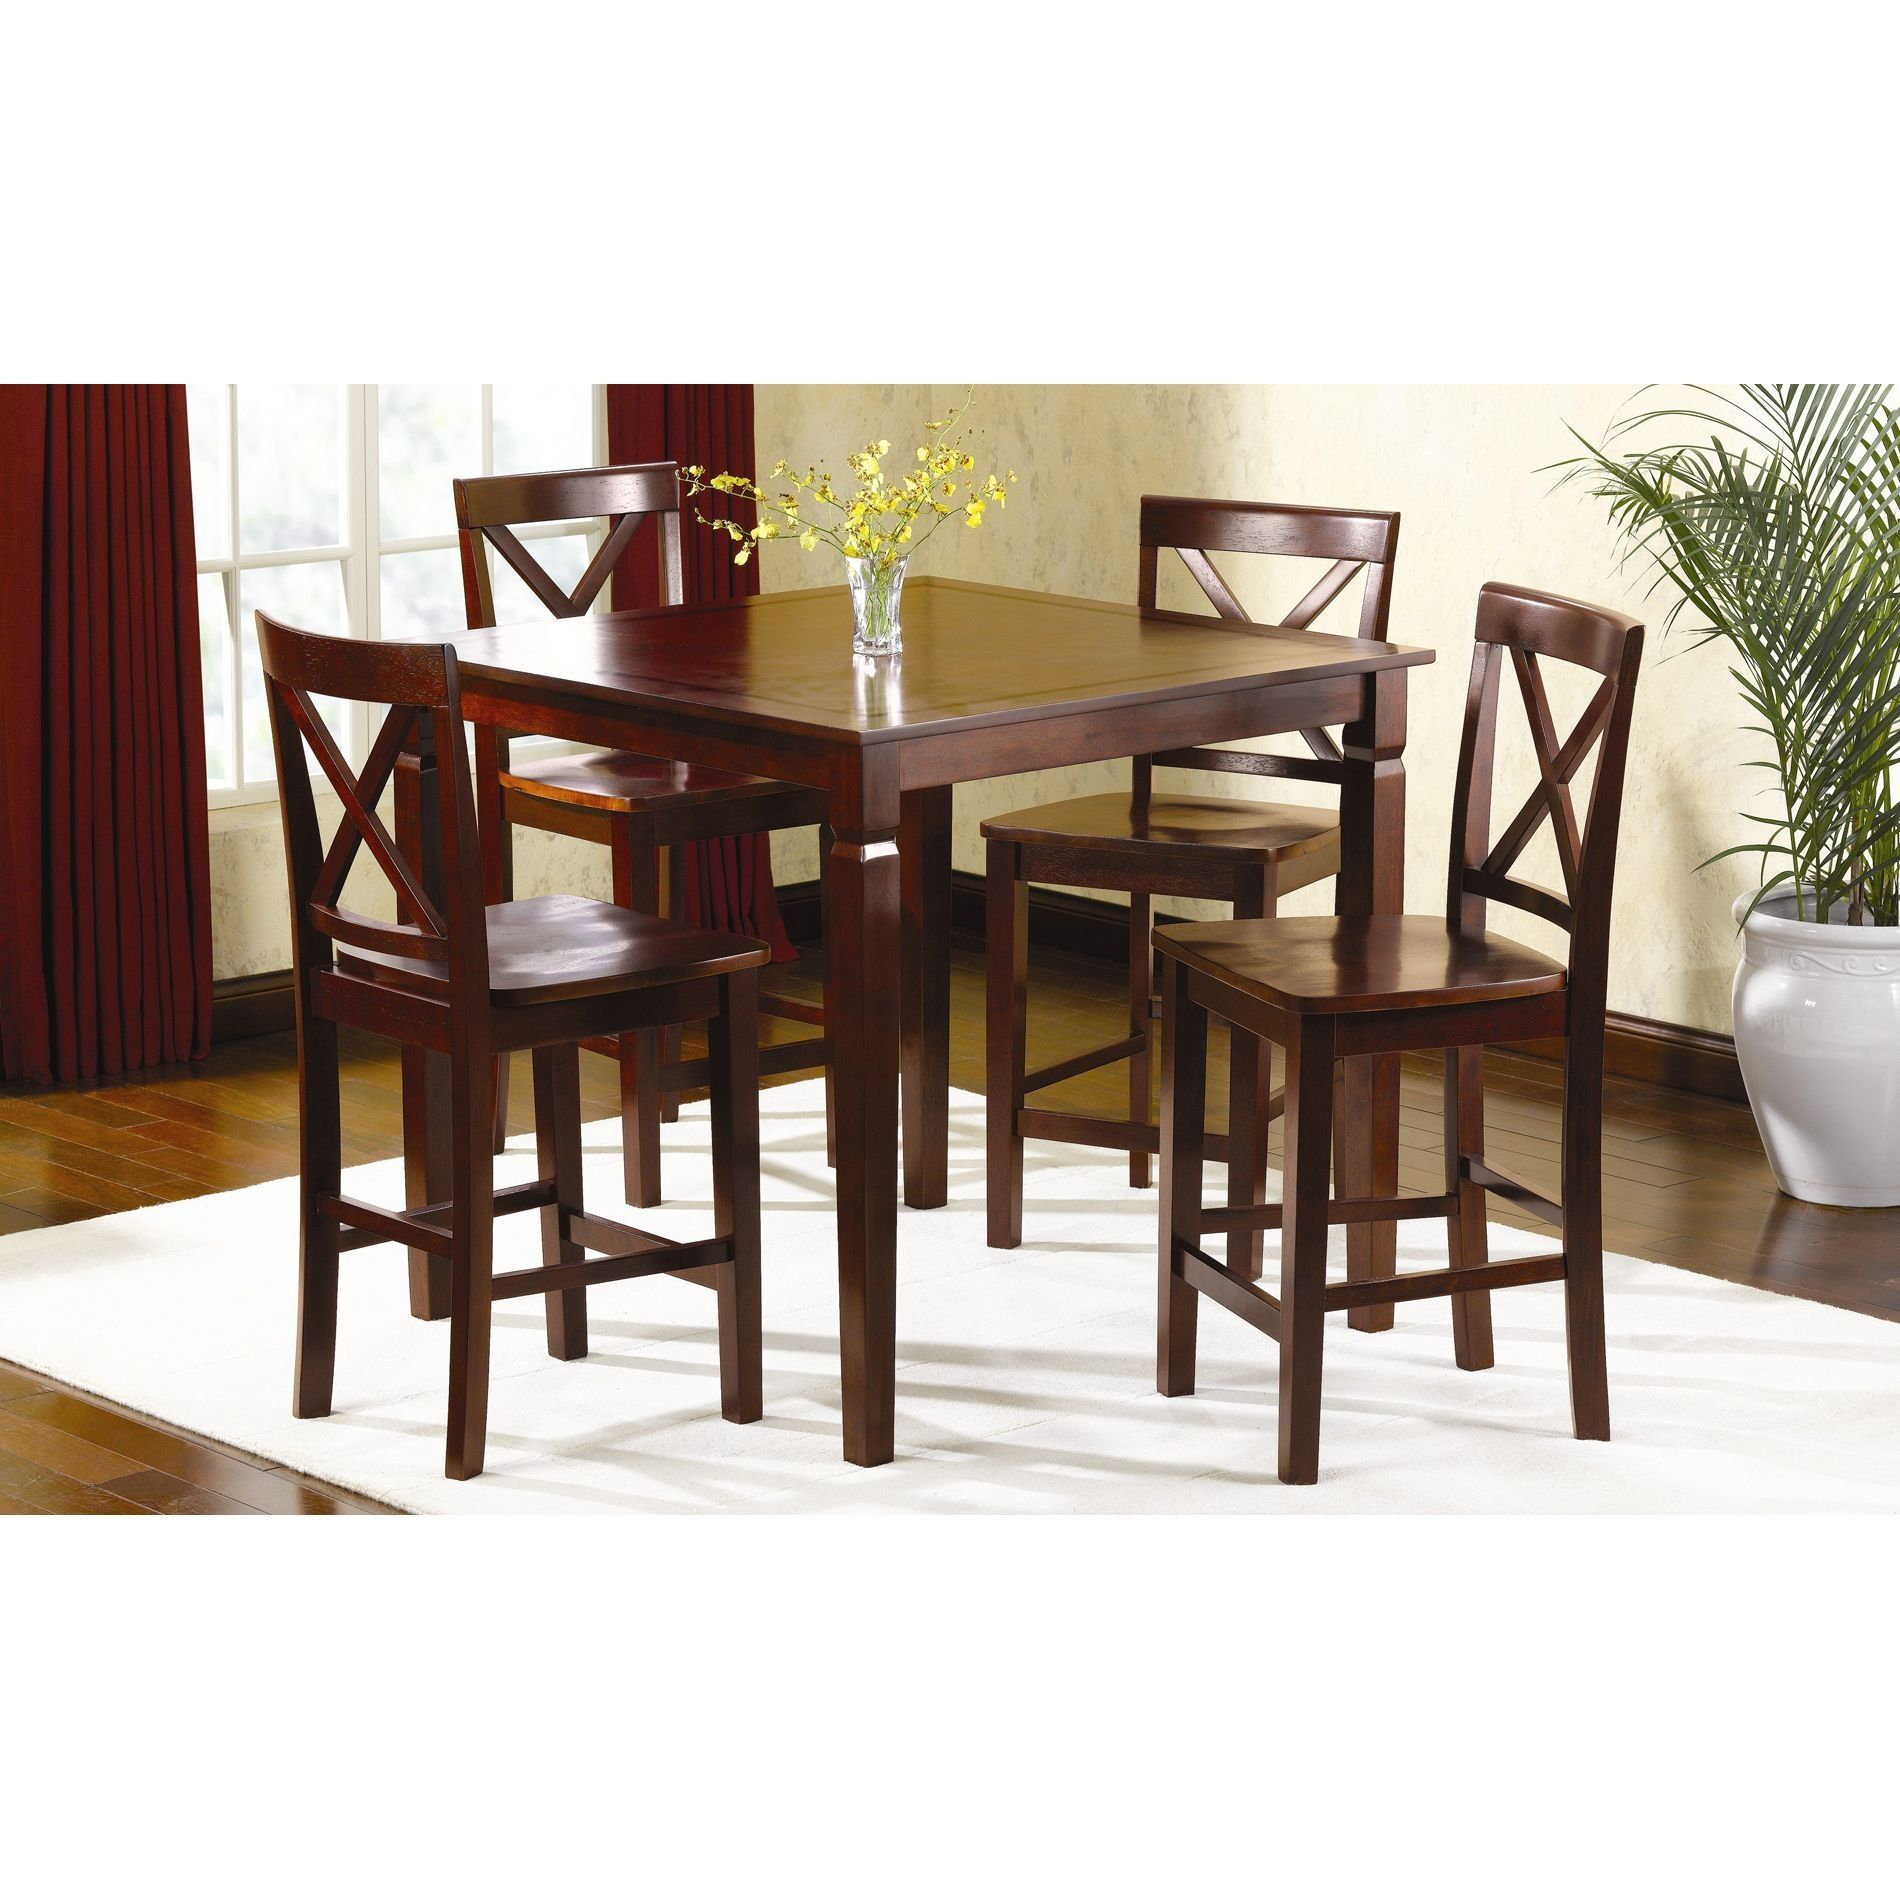 Dining Room Table Kmart